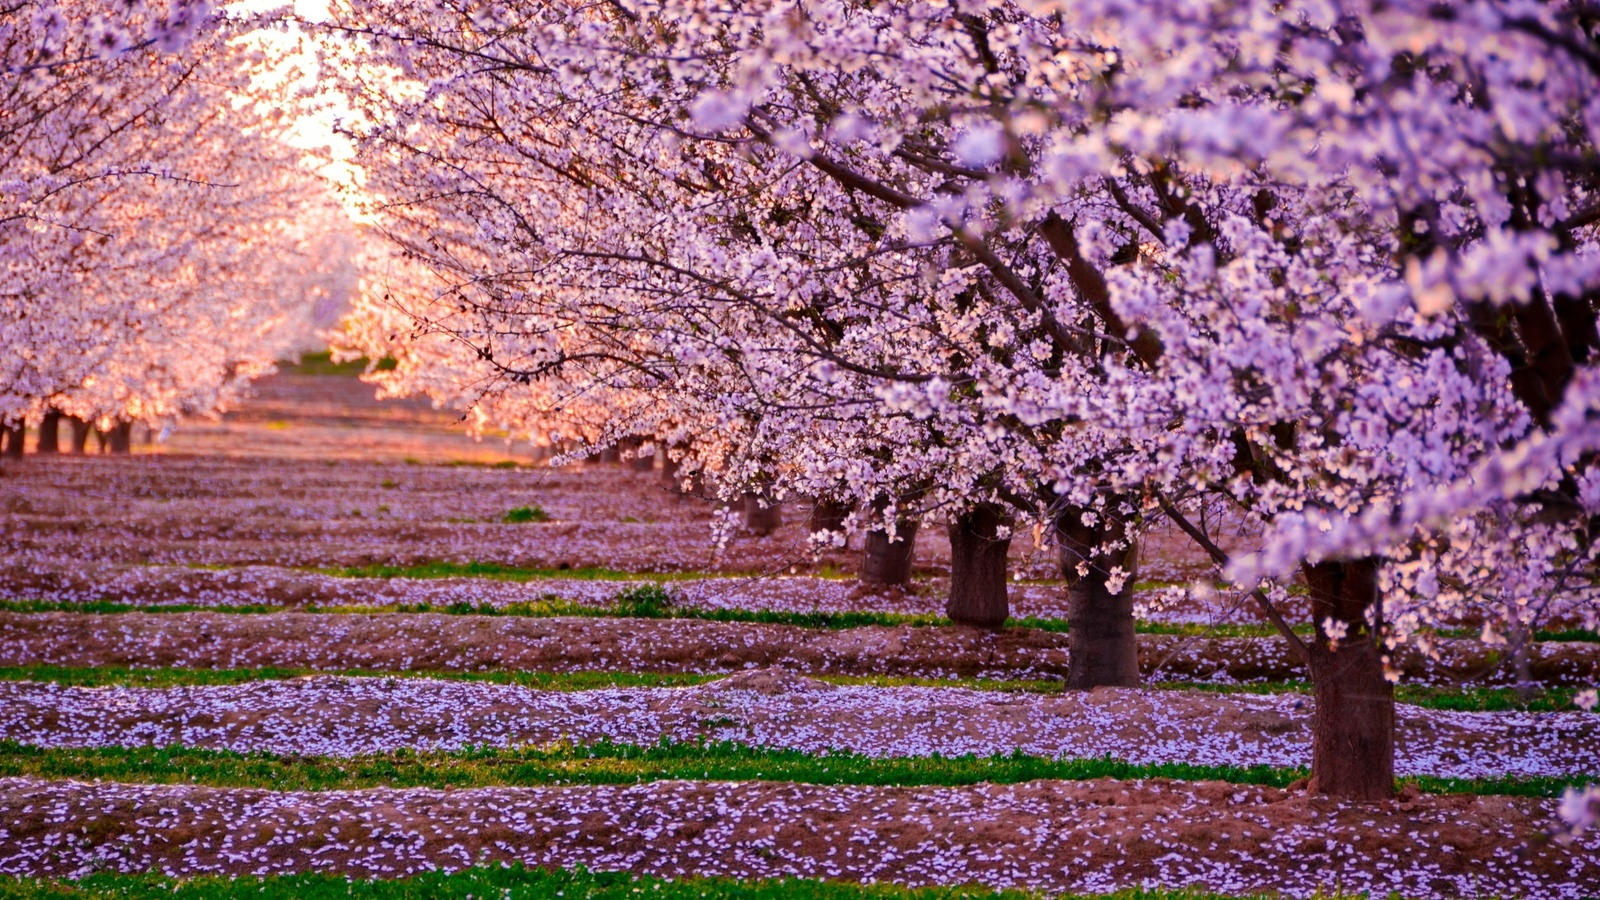 1600x900 blossom nature pink flowers trees 1600x900 resolution hd 4k blossom nature pink flowers trees dog mightylinksfo